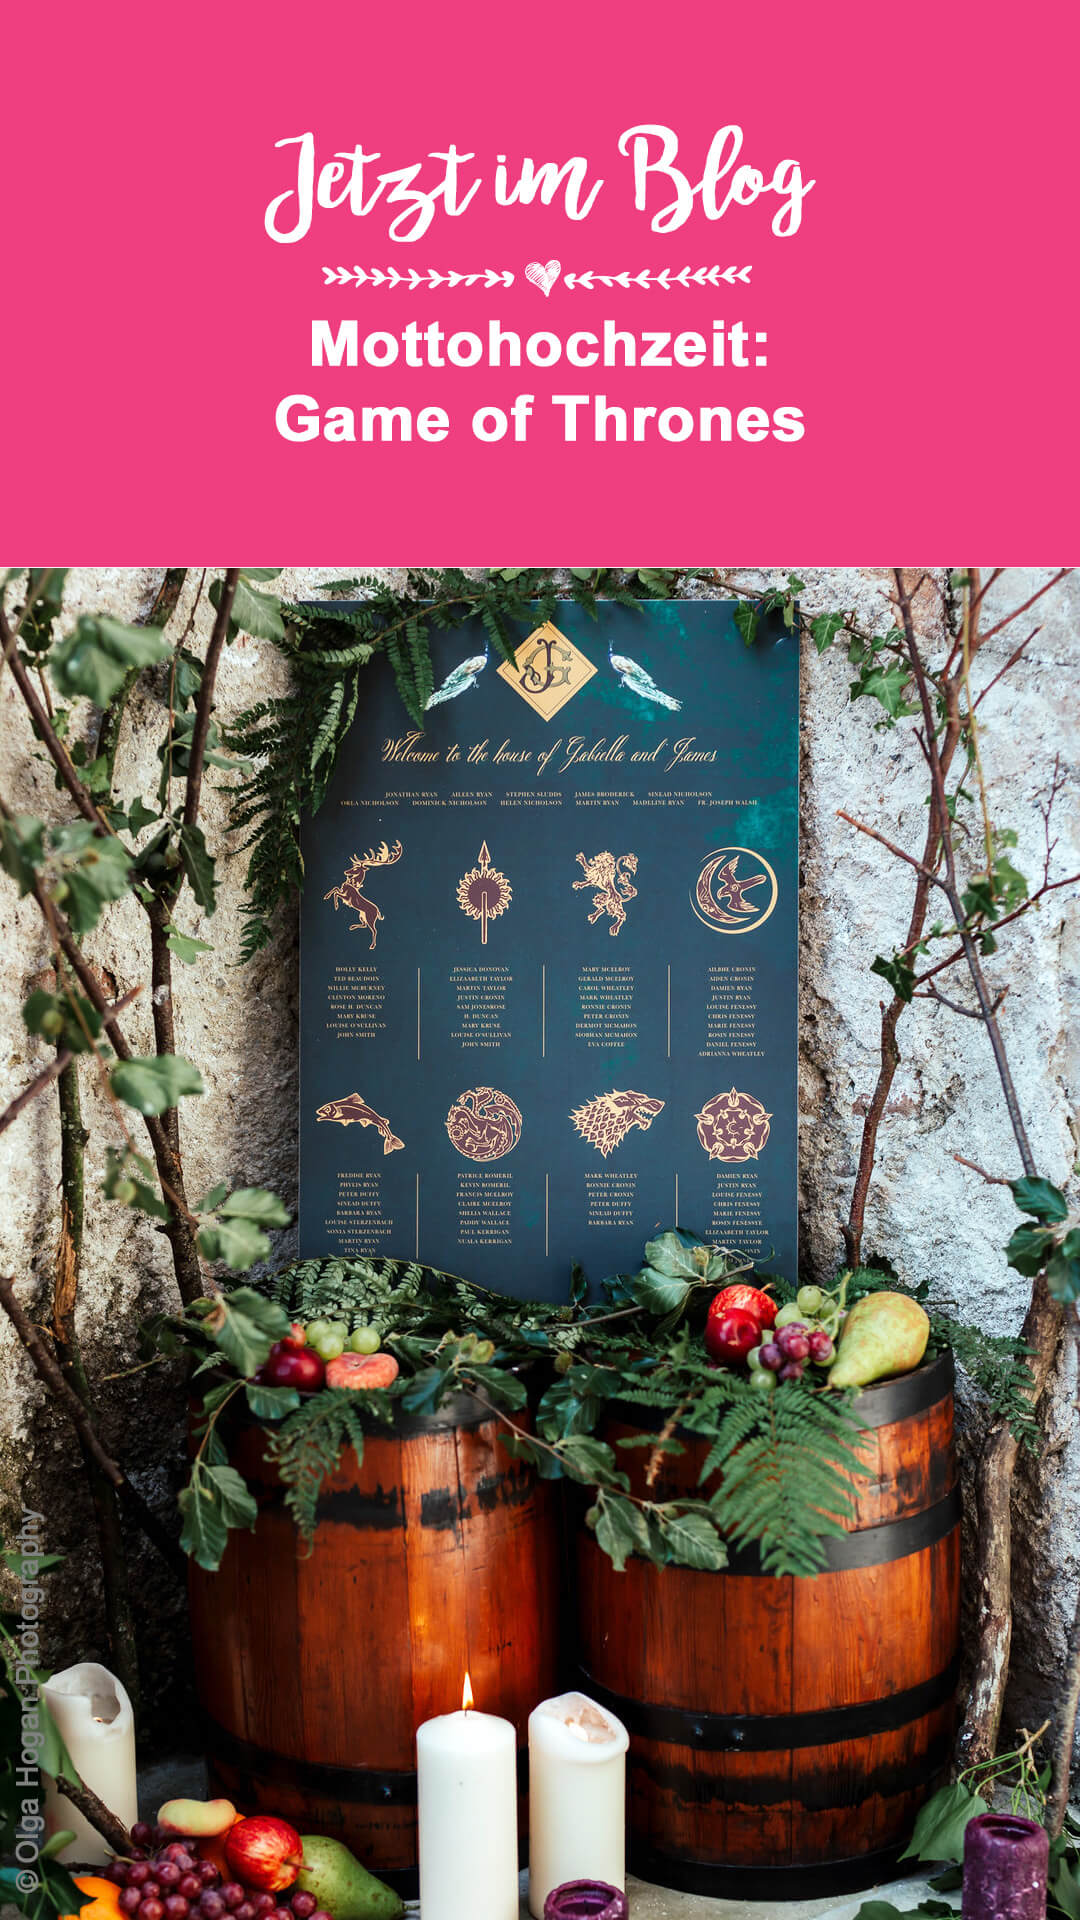 Game of Thrones Mottohochzeit